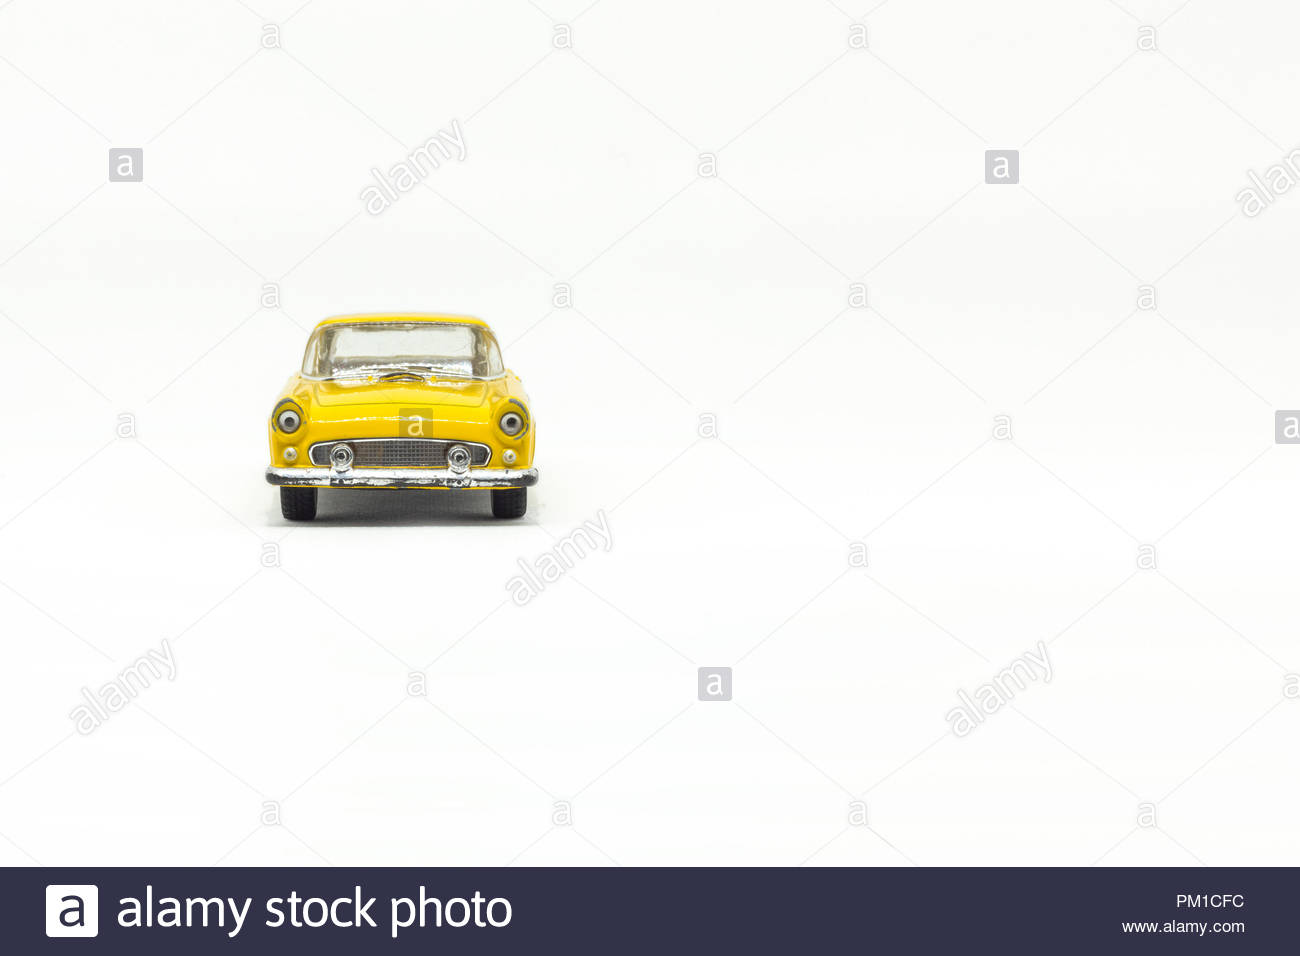 Used yellow american toy car, front view - Stock Image